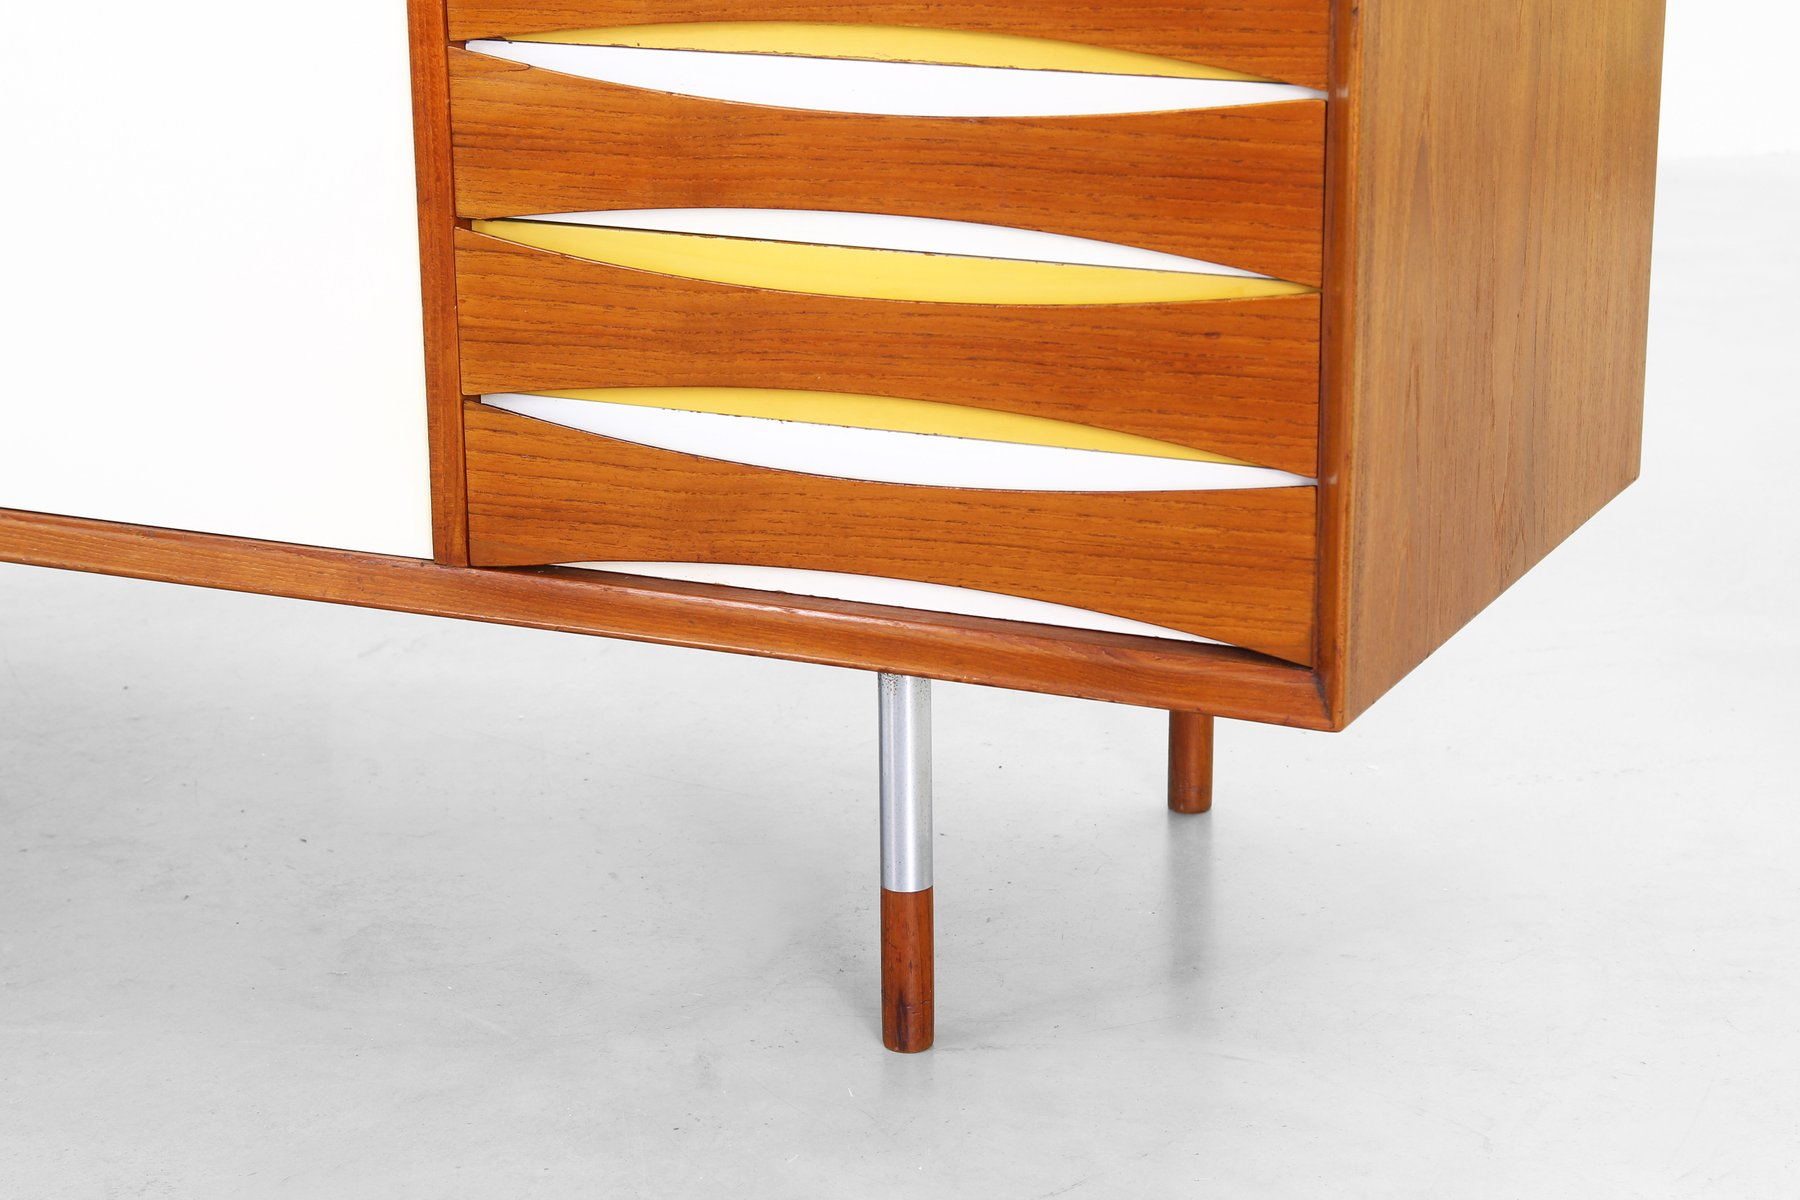 Mid Century Danish Mod 29 Sideboard By Arne Vodder For Sibast Furniture 1958 For Sale At Pamono